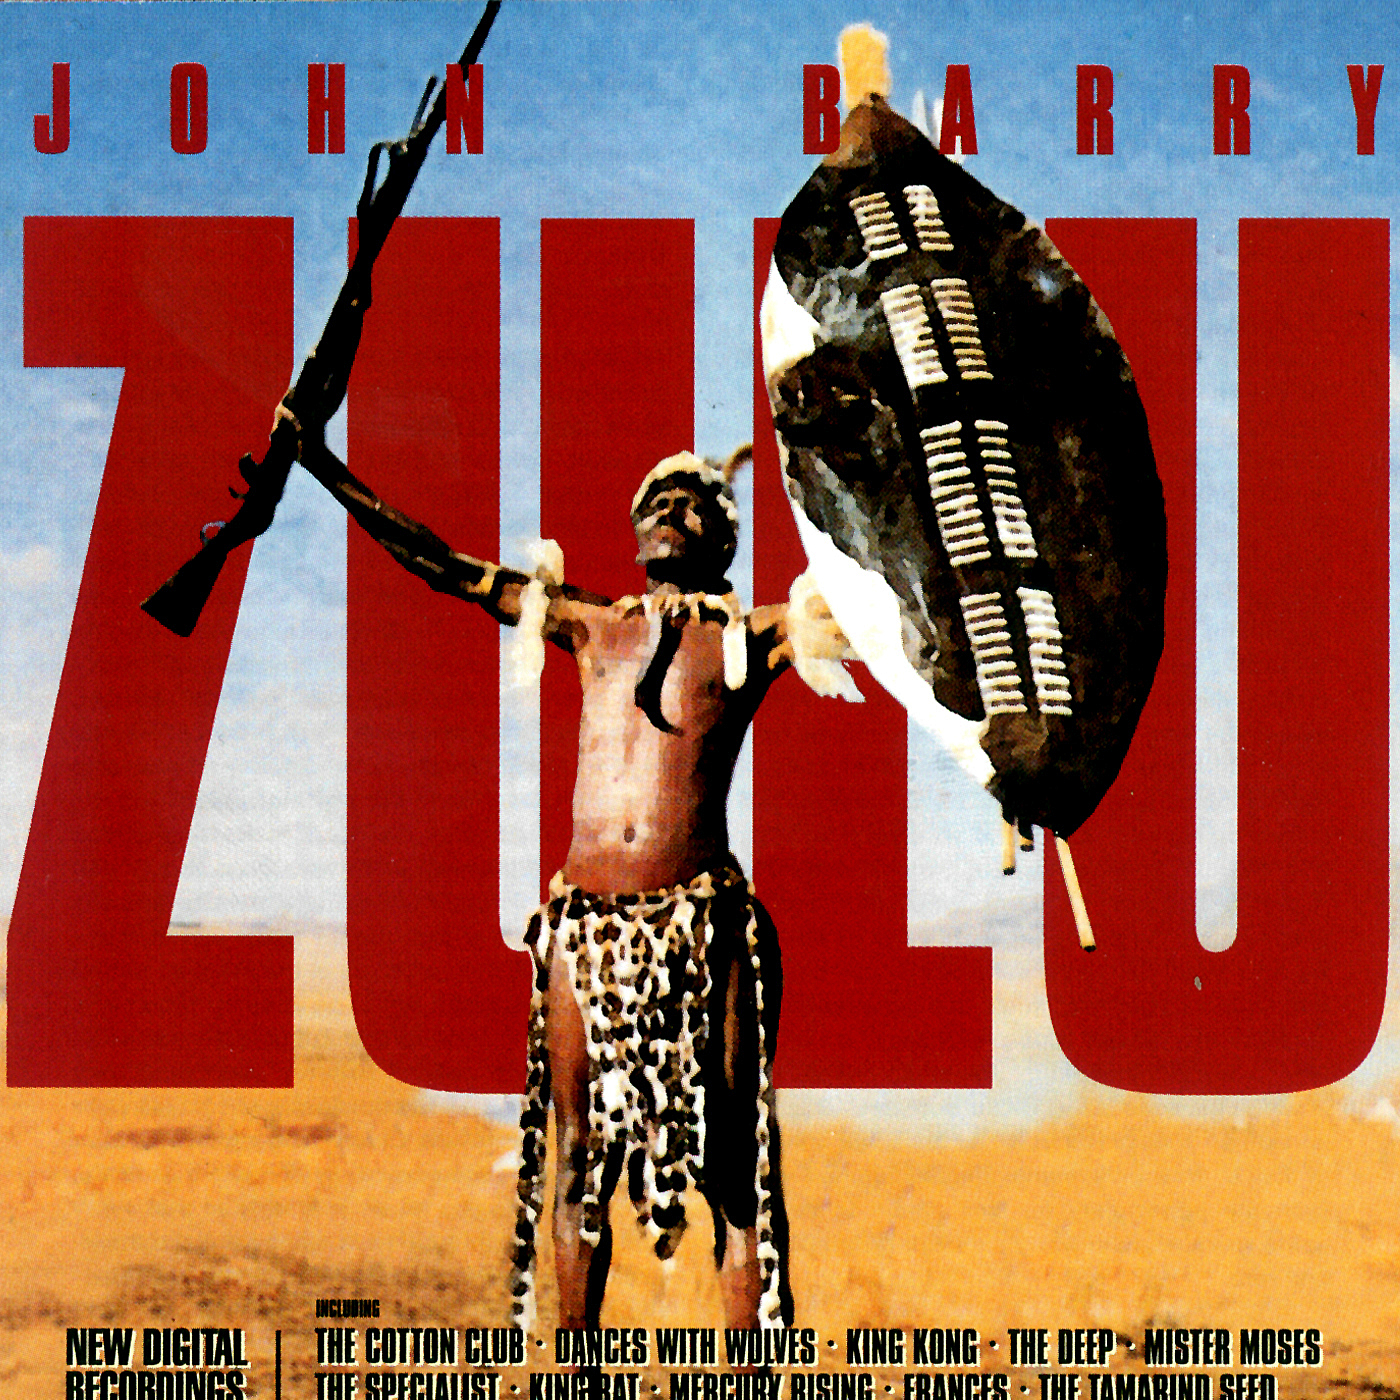 Zulu: The Essential John Barry